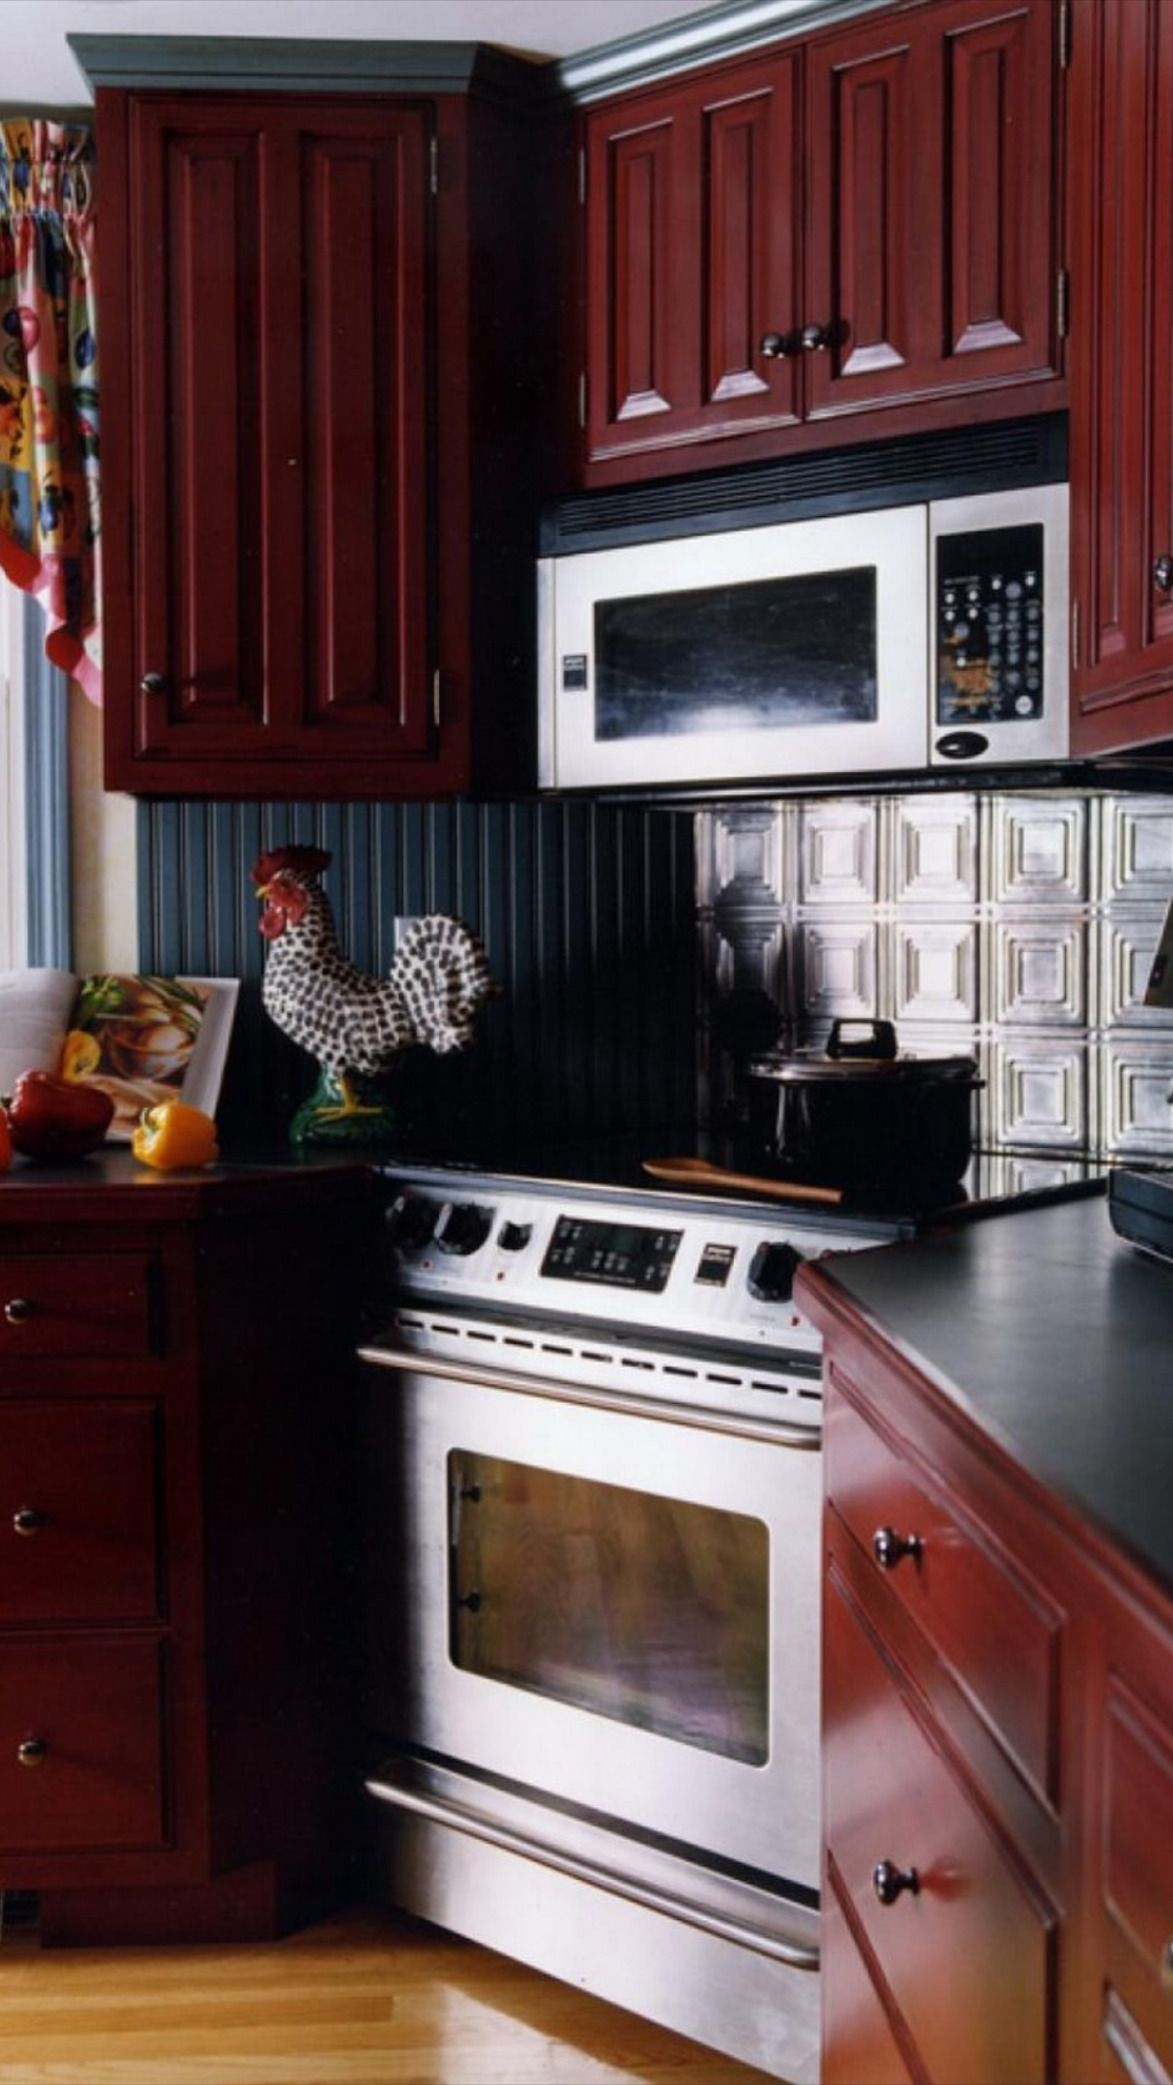 9 Best Kitchen Cabinet Hardware An Immersive Guide By Home Decor Red kitchen cabinet pulls